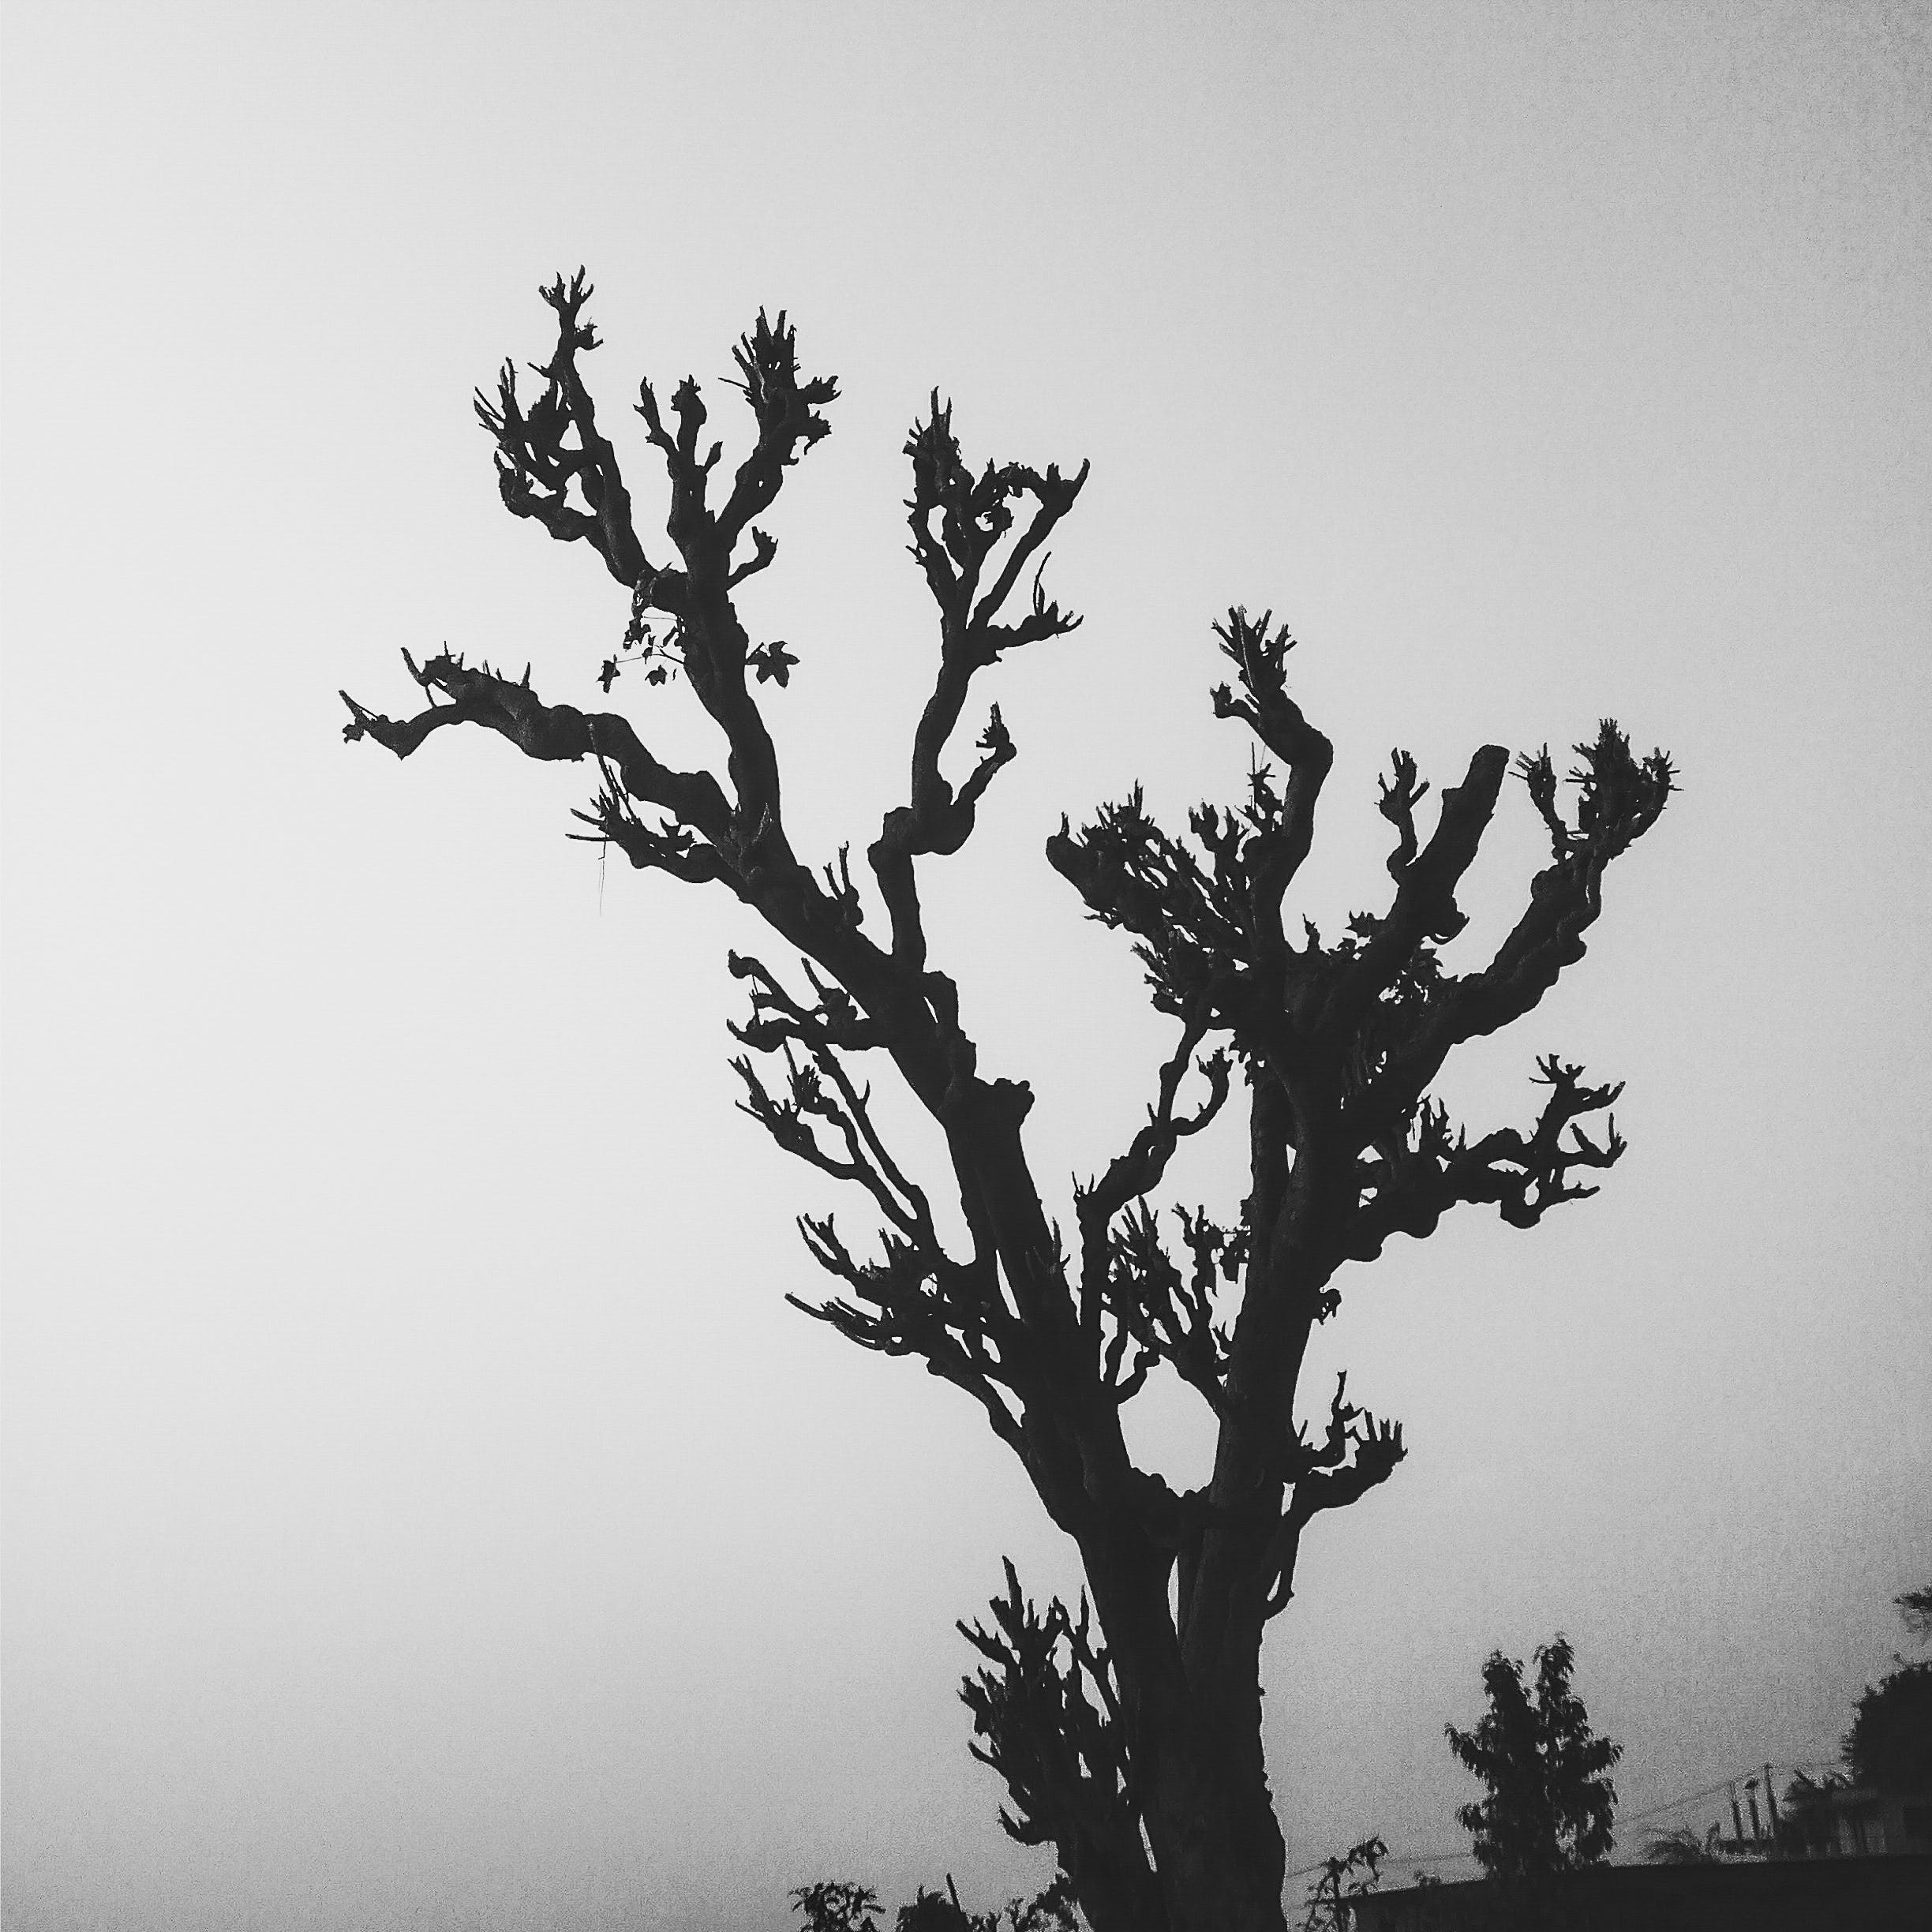 Free stock photo of black and white, old tree, One tree hill, outdoor